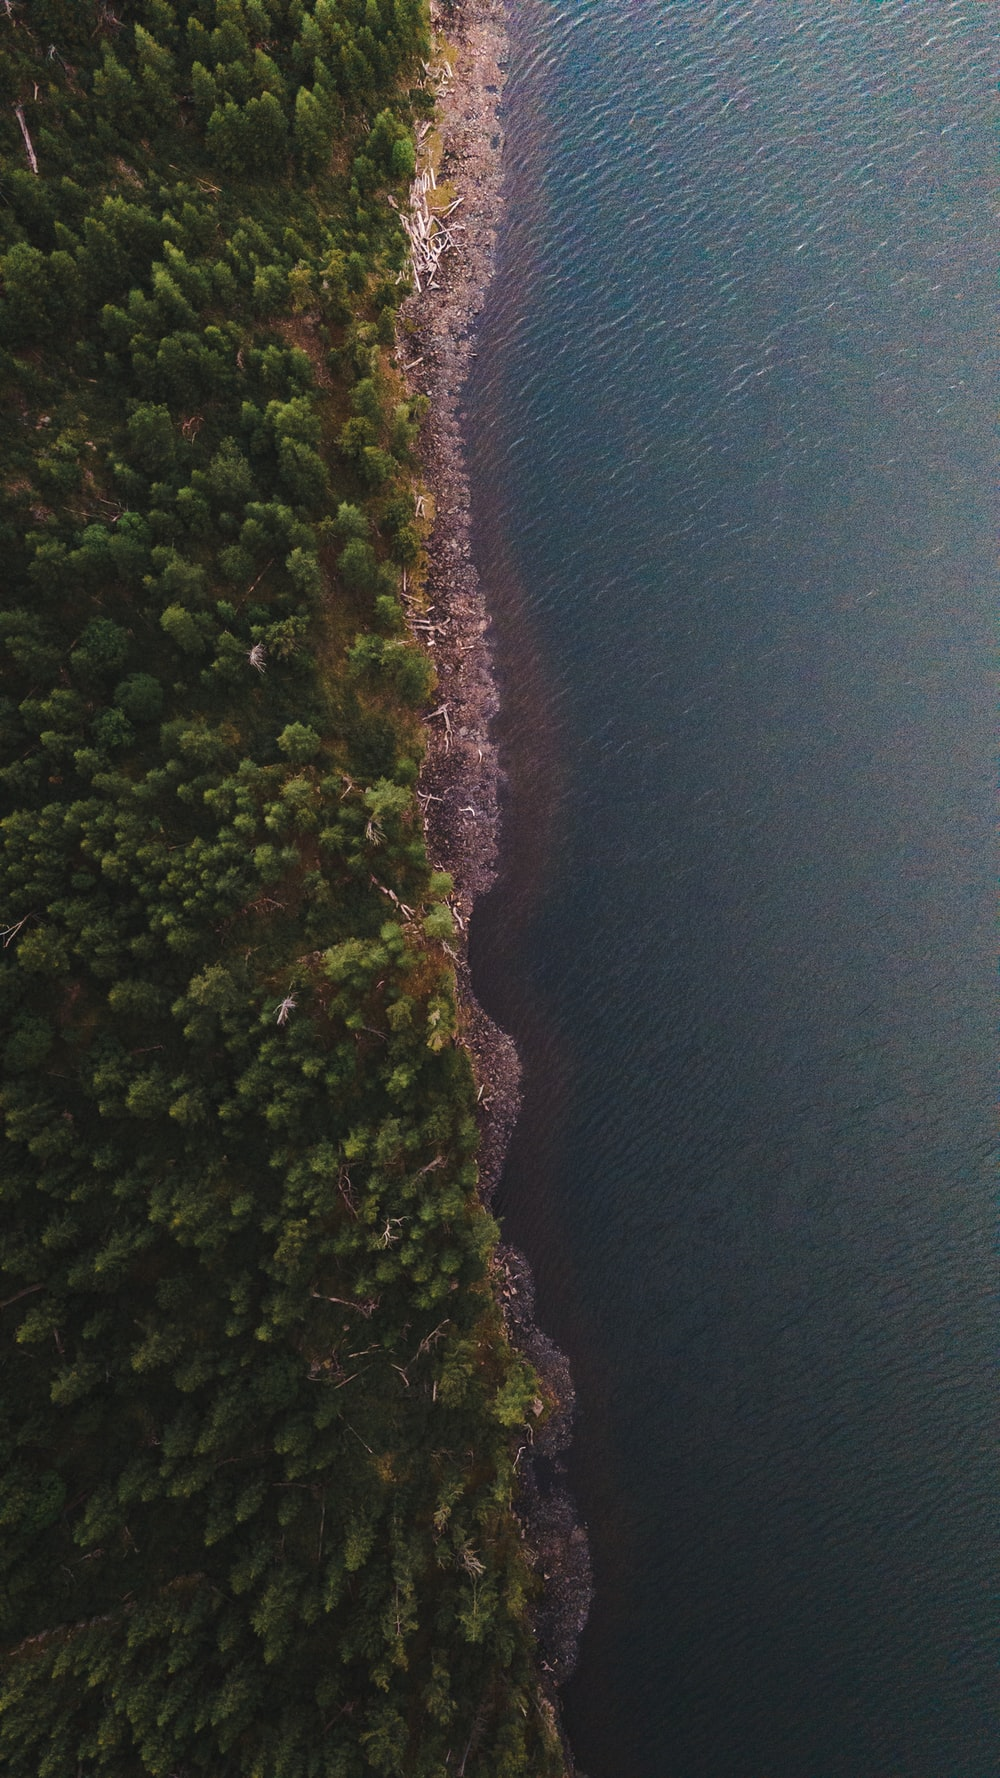 aerial view of green trees beside body of water during daytime